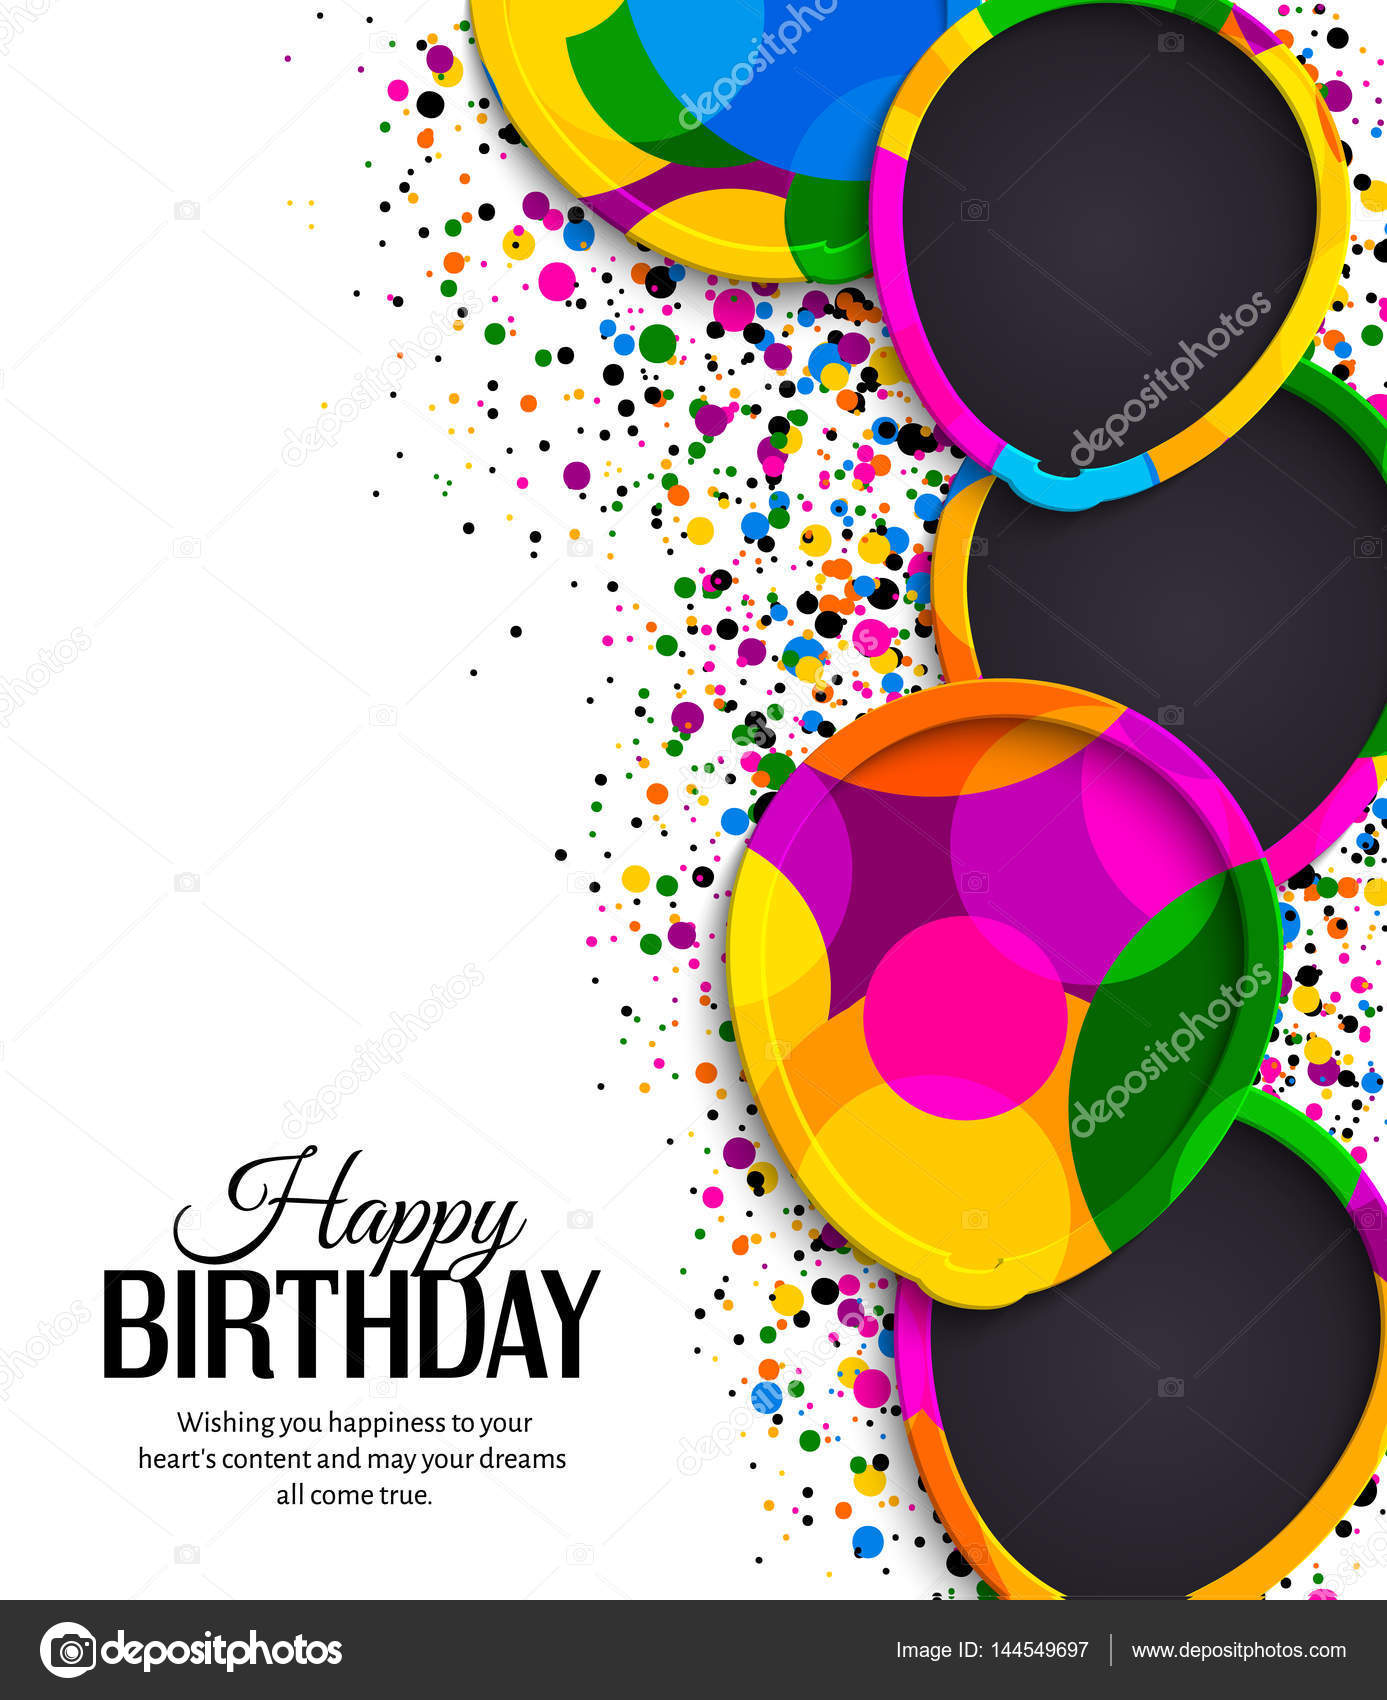 happy birthday card borders ; depositphotos_144549697-stock-illustration-happy-birthday-greeting-card-paper